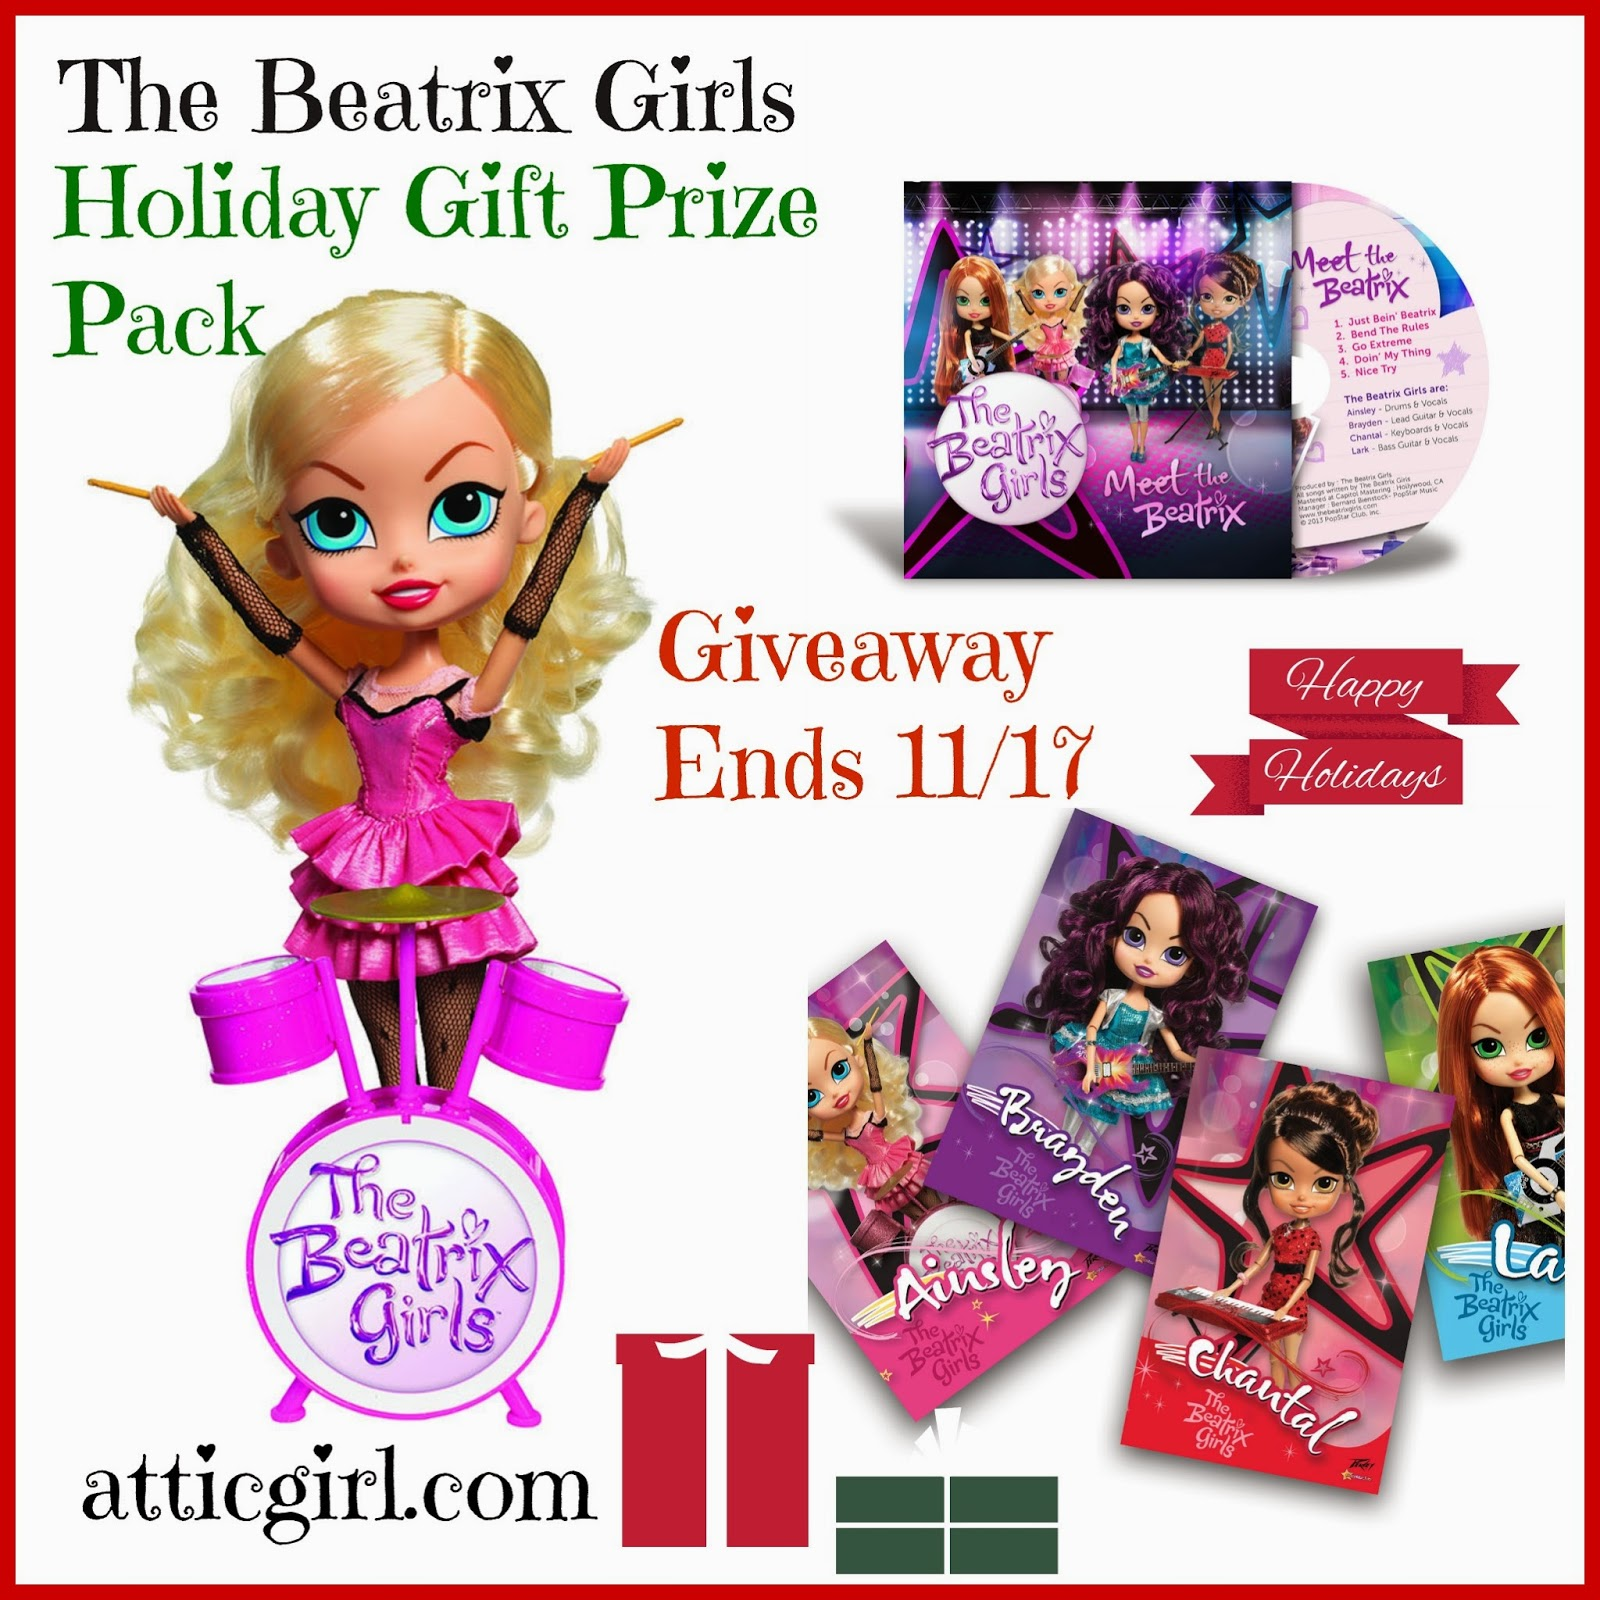 Holiday Gift Guide, The Beatrix Girls